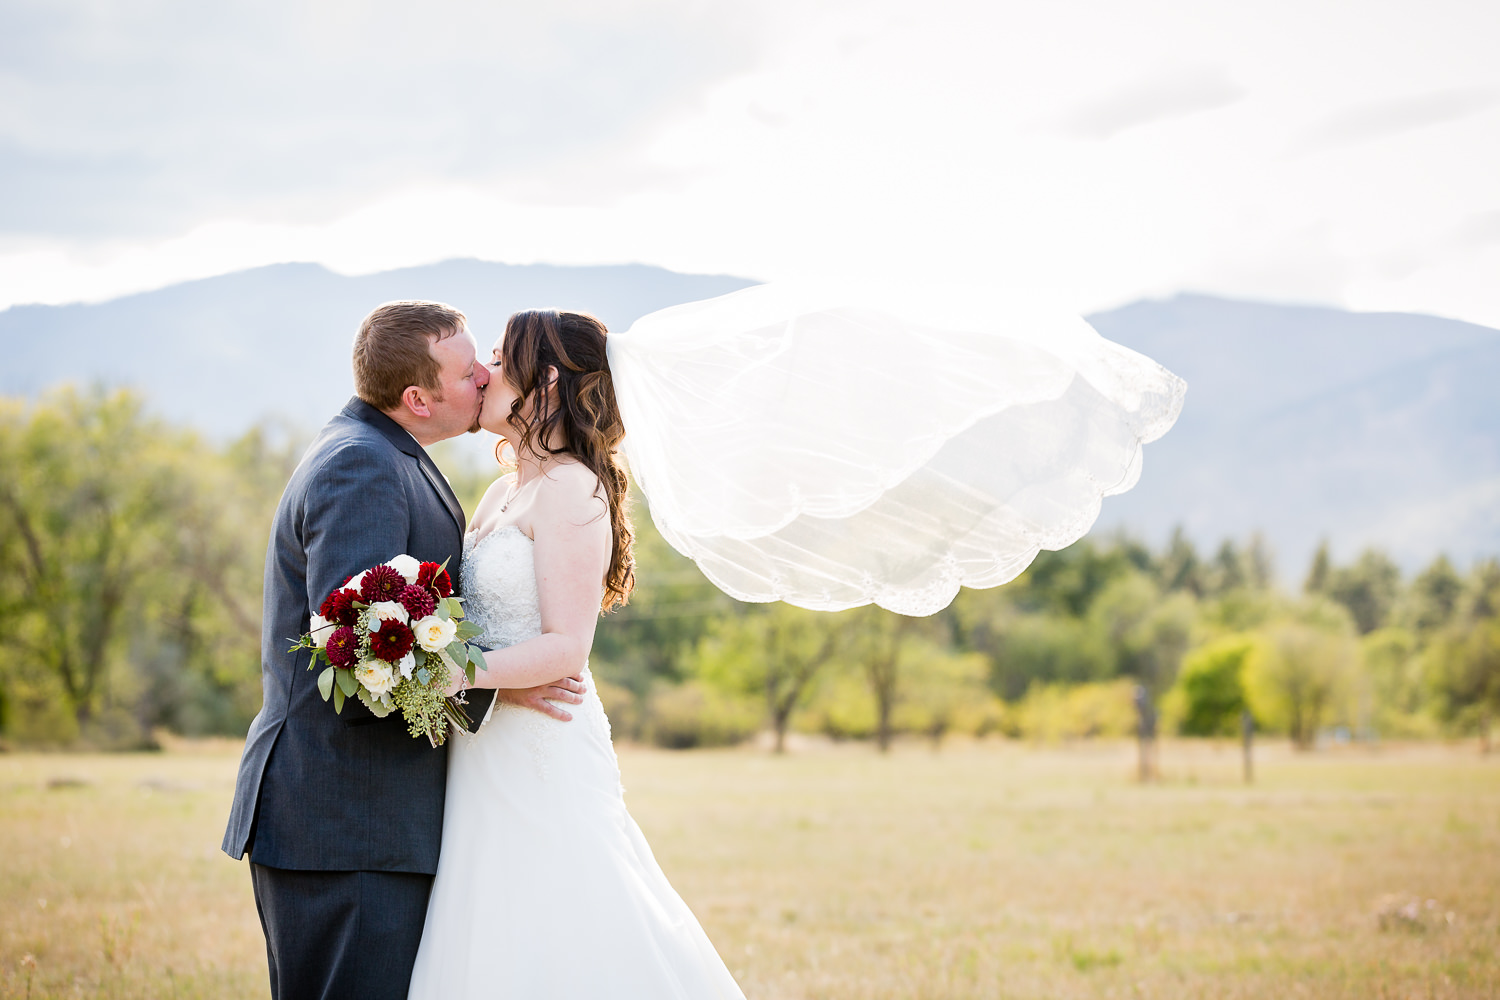 heritage-hall-missoula-montana-bride-groom-kissing-while-veil-flies.jpg